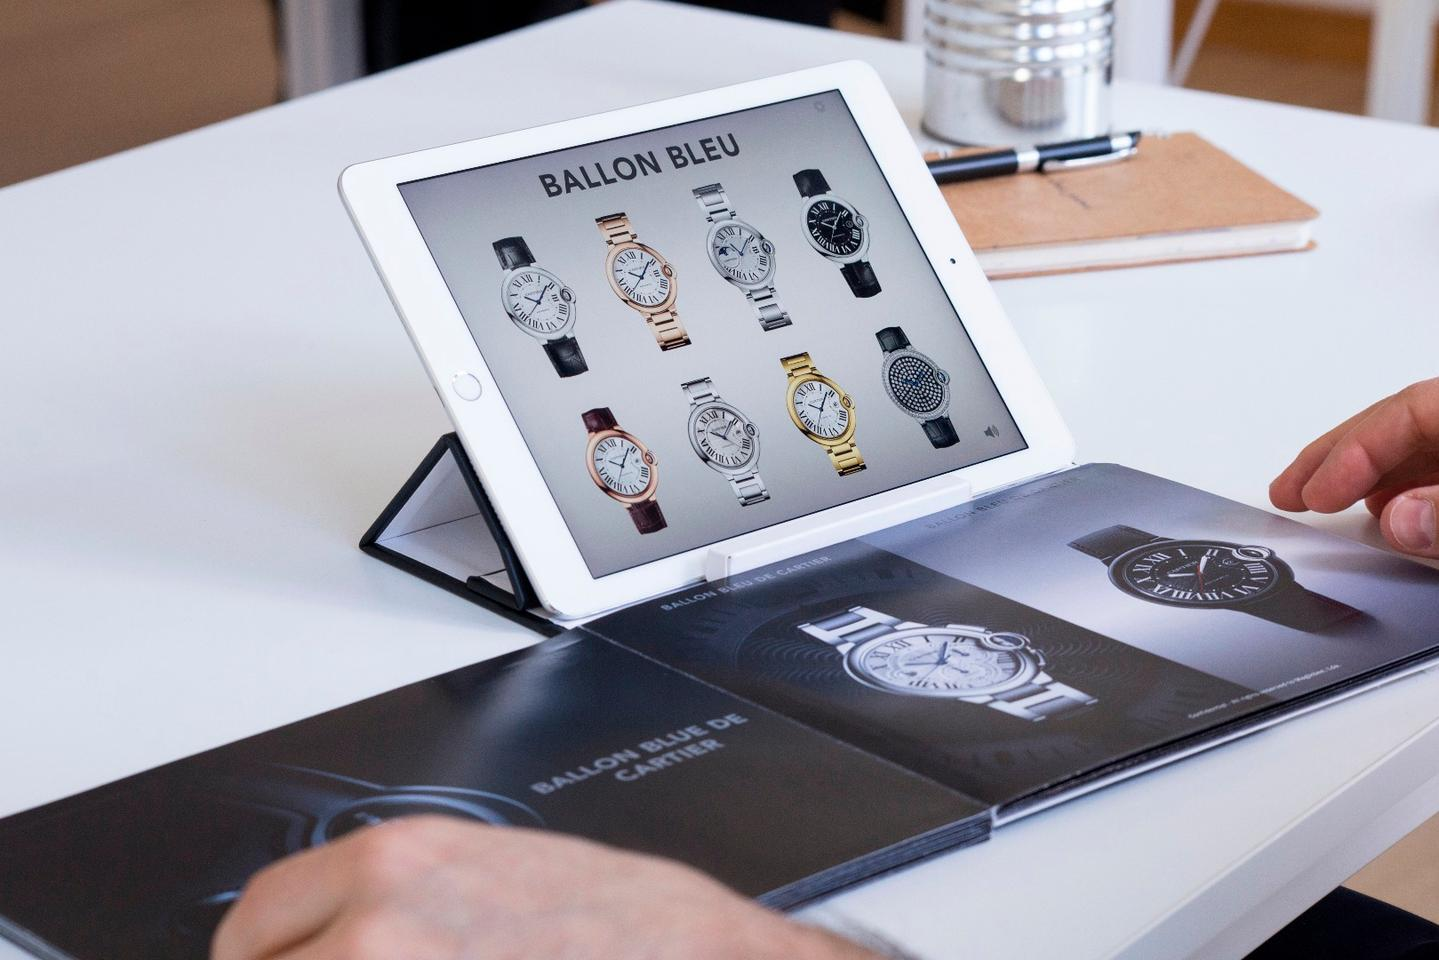 Benefits of augmented reality for jewelry business